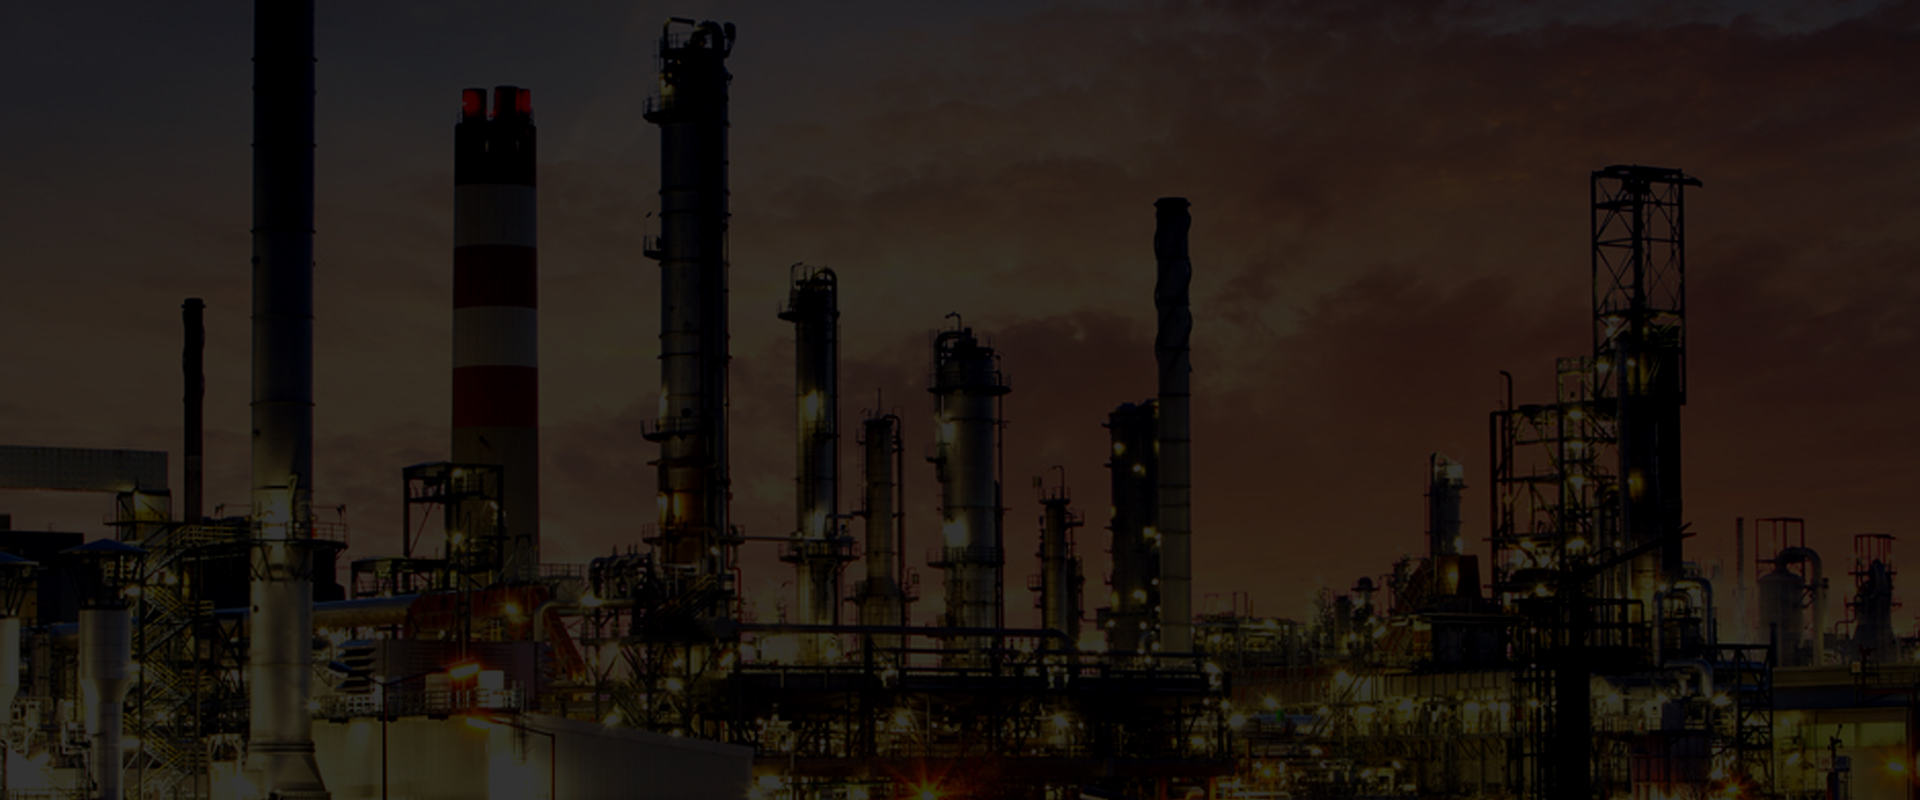 The Oil & Gas, Power and Petro-Chemical Services Solutions Provider